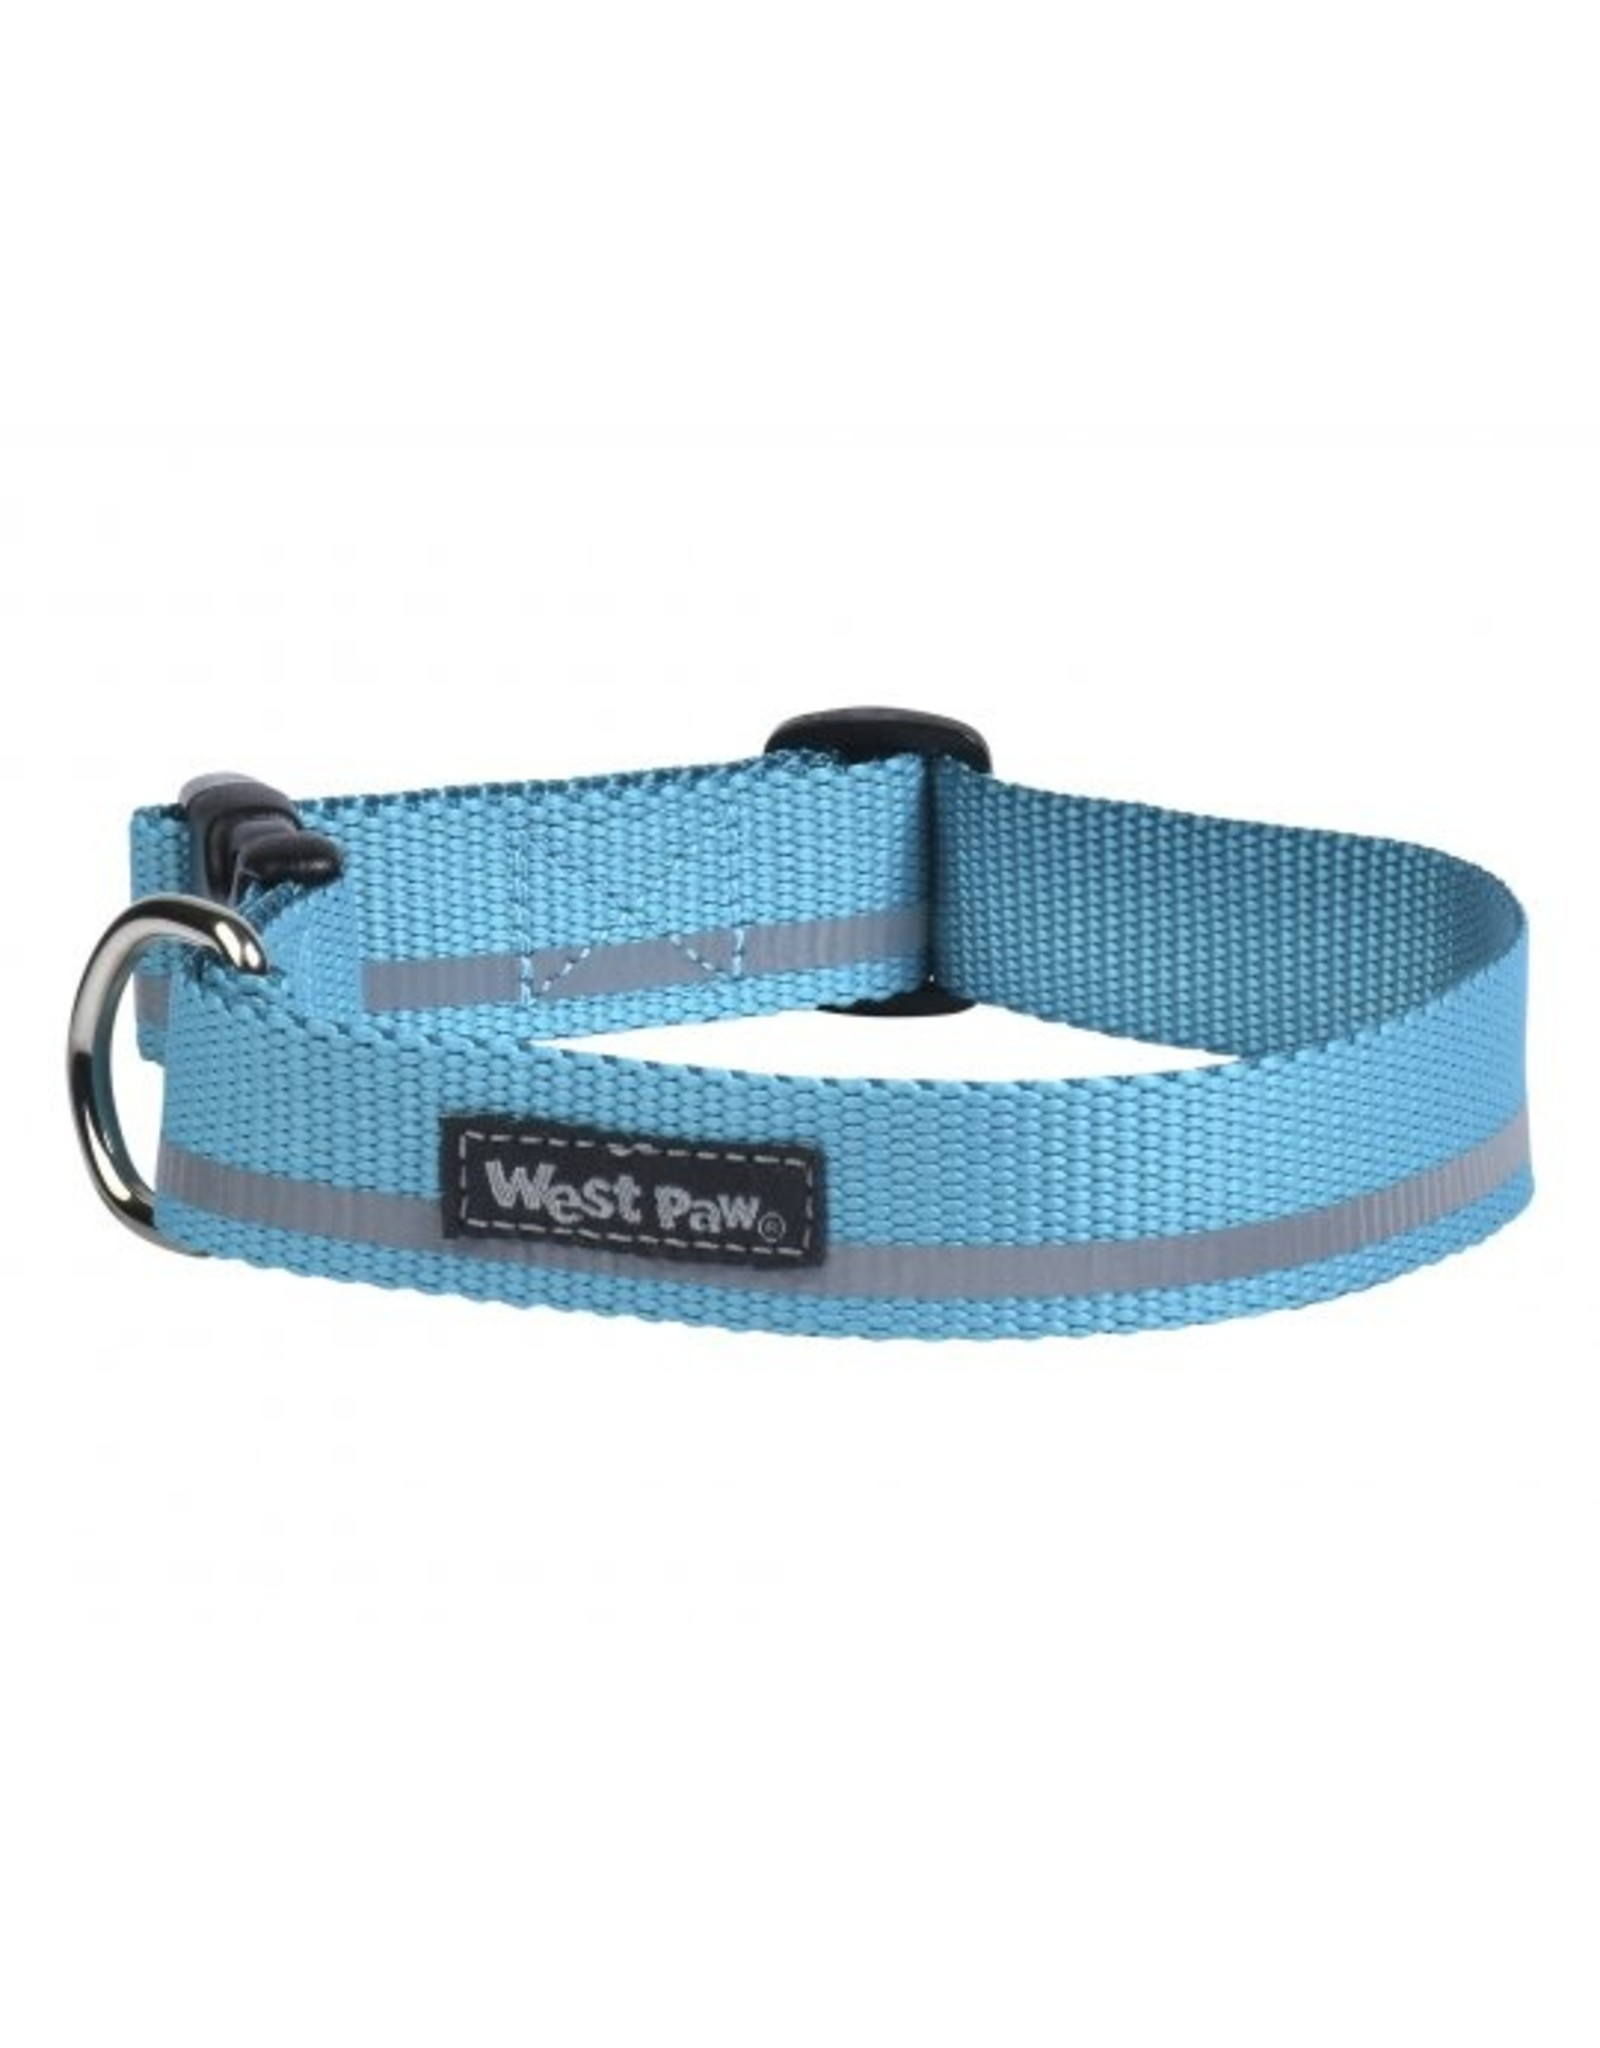 West Paw Designs Westpaw: Strolls Collar Medium Turquoise Reflective